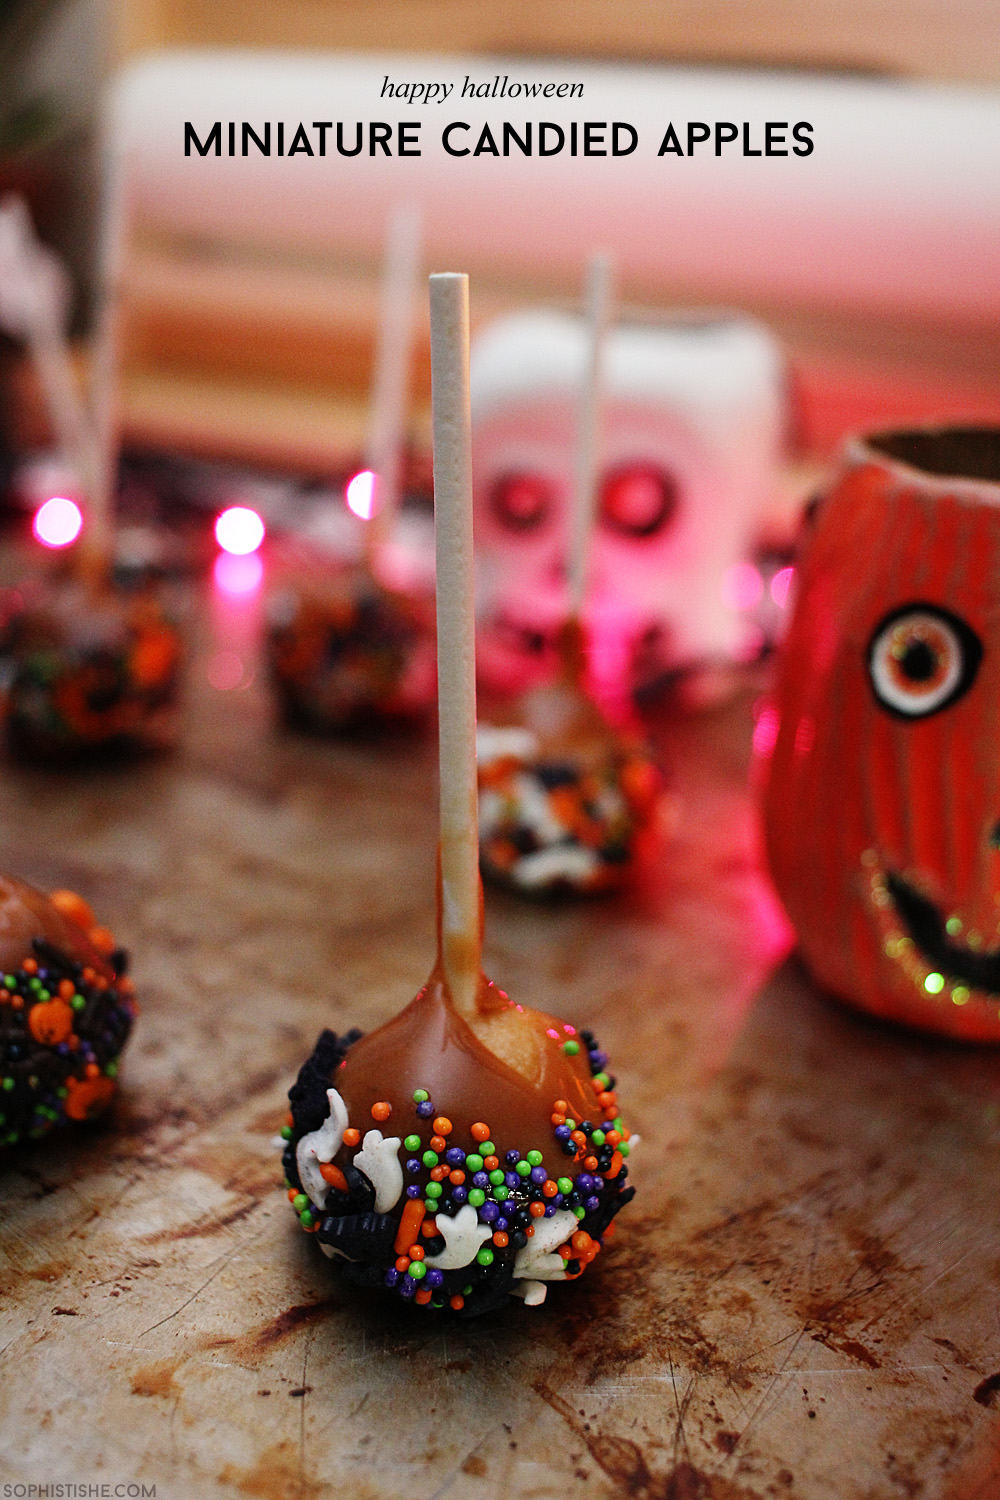 Miniature Candied Apples for Halloween via @sheenatatum